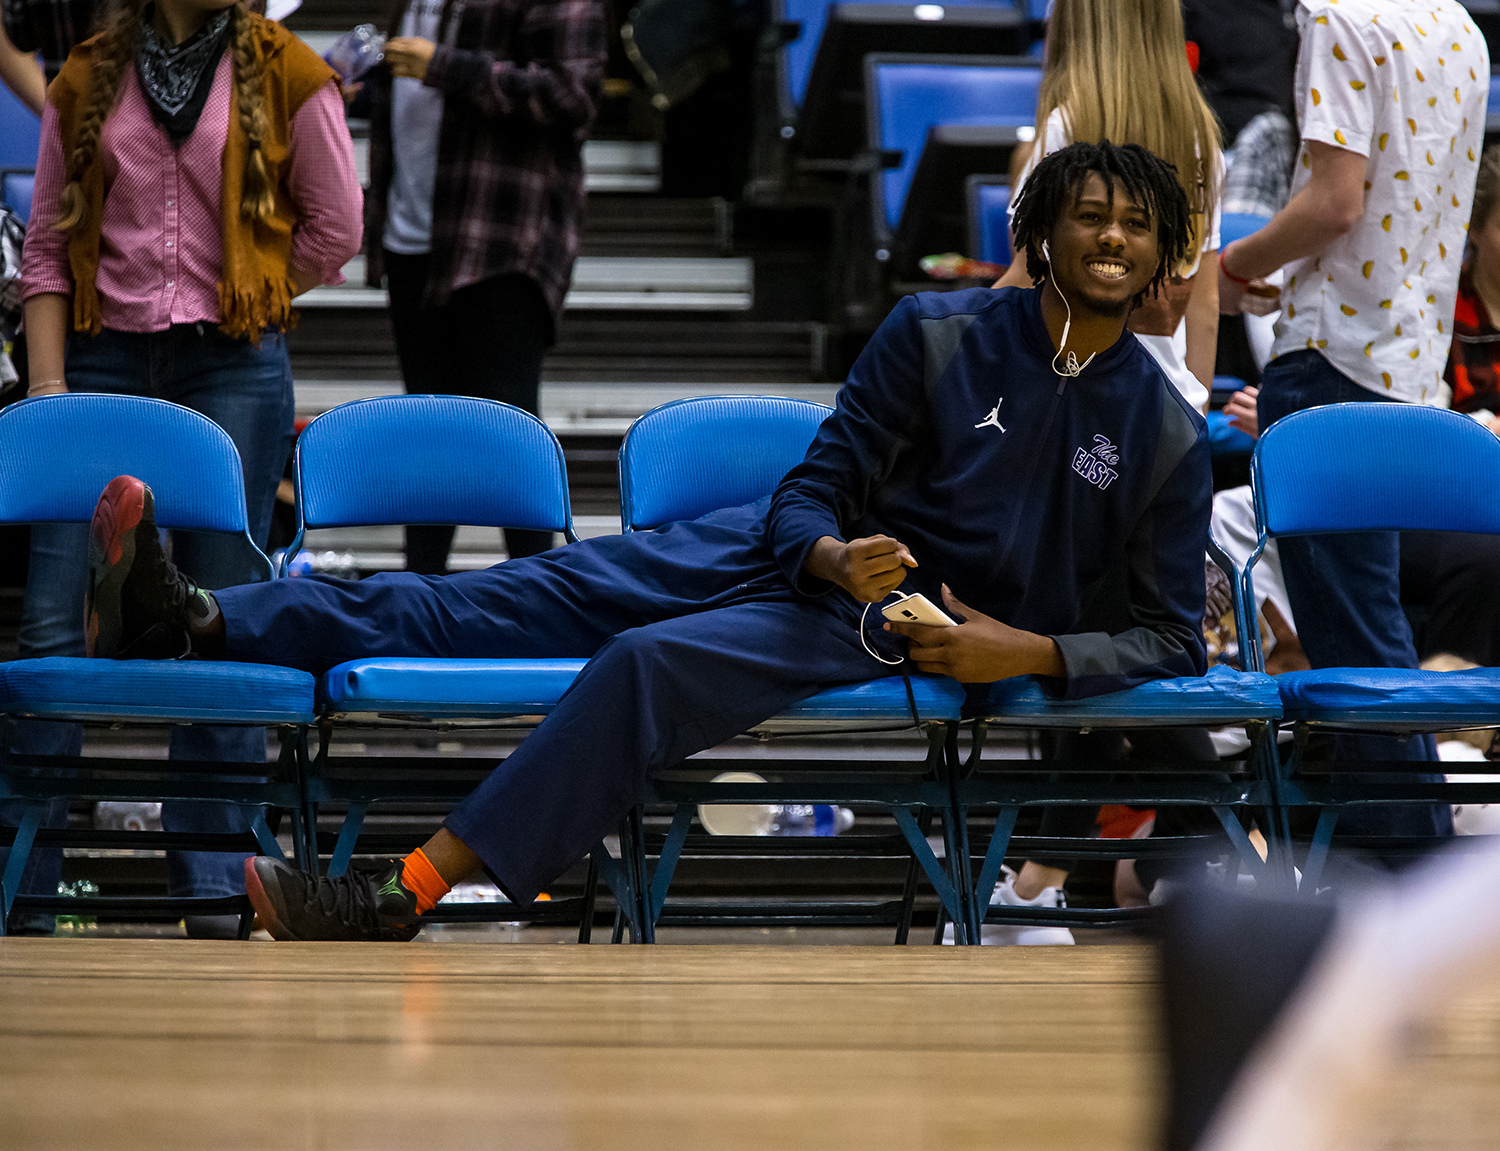 Southeast's Anthony Fairlee (21) watches from the bench as the Spartans take on Lanphier as he nurses his injured knee in the second quarter on opening night of the Boys City Tournament at the Bank of Springfield Center, Wednesday, Jan. 16, 2019, in Springfield, Ill. [Justin L. Fowler/The State Journal-Register]